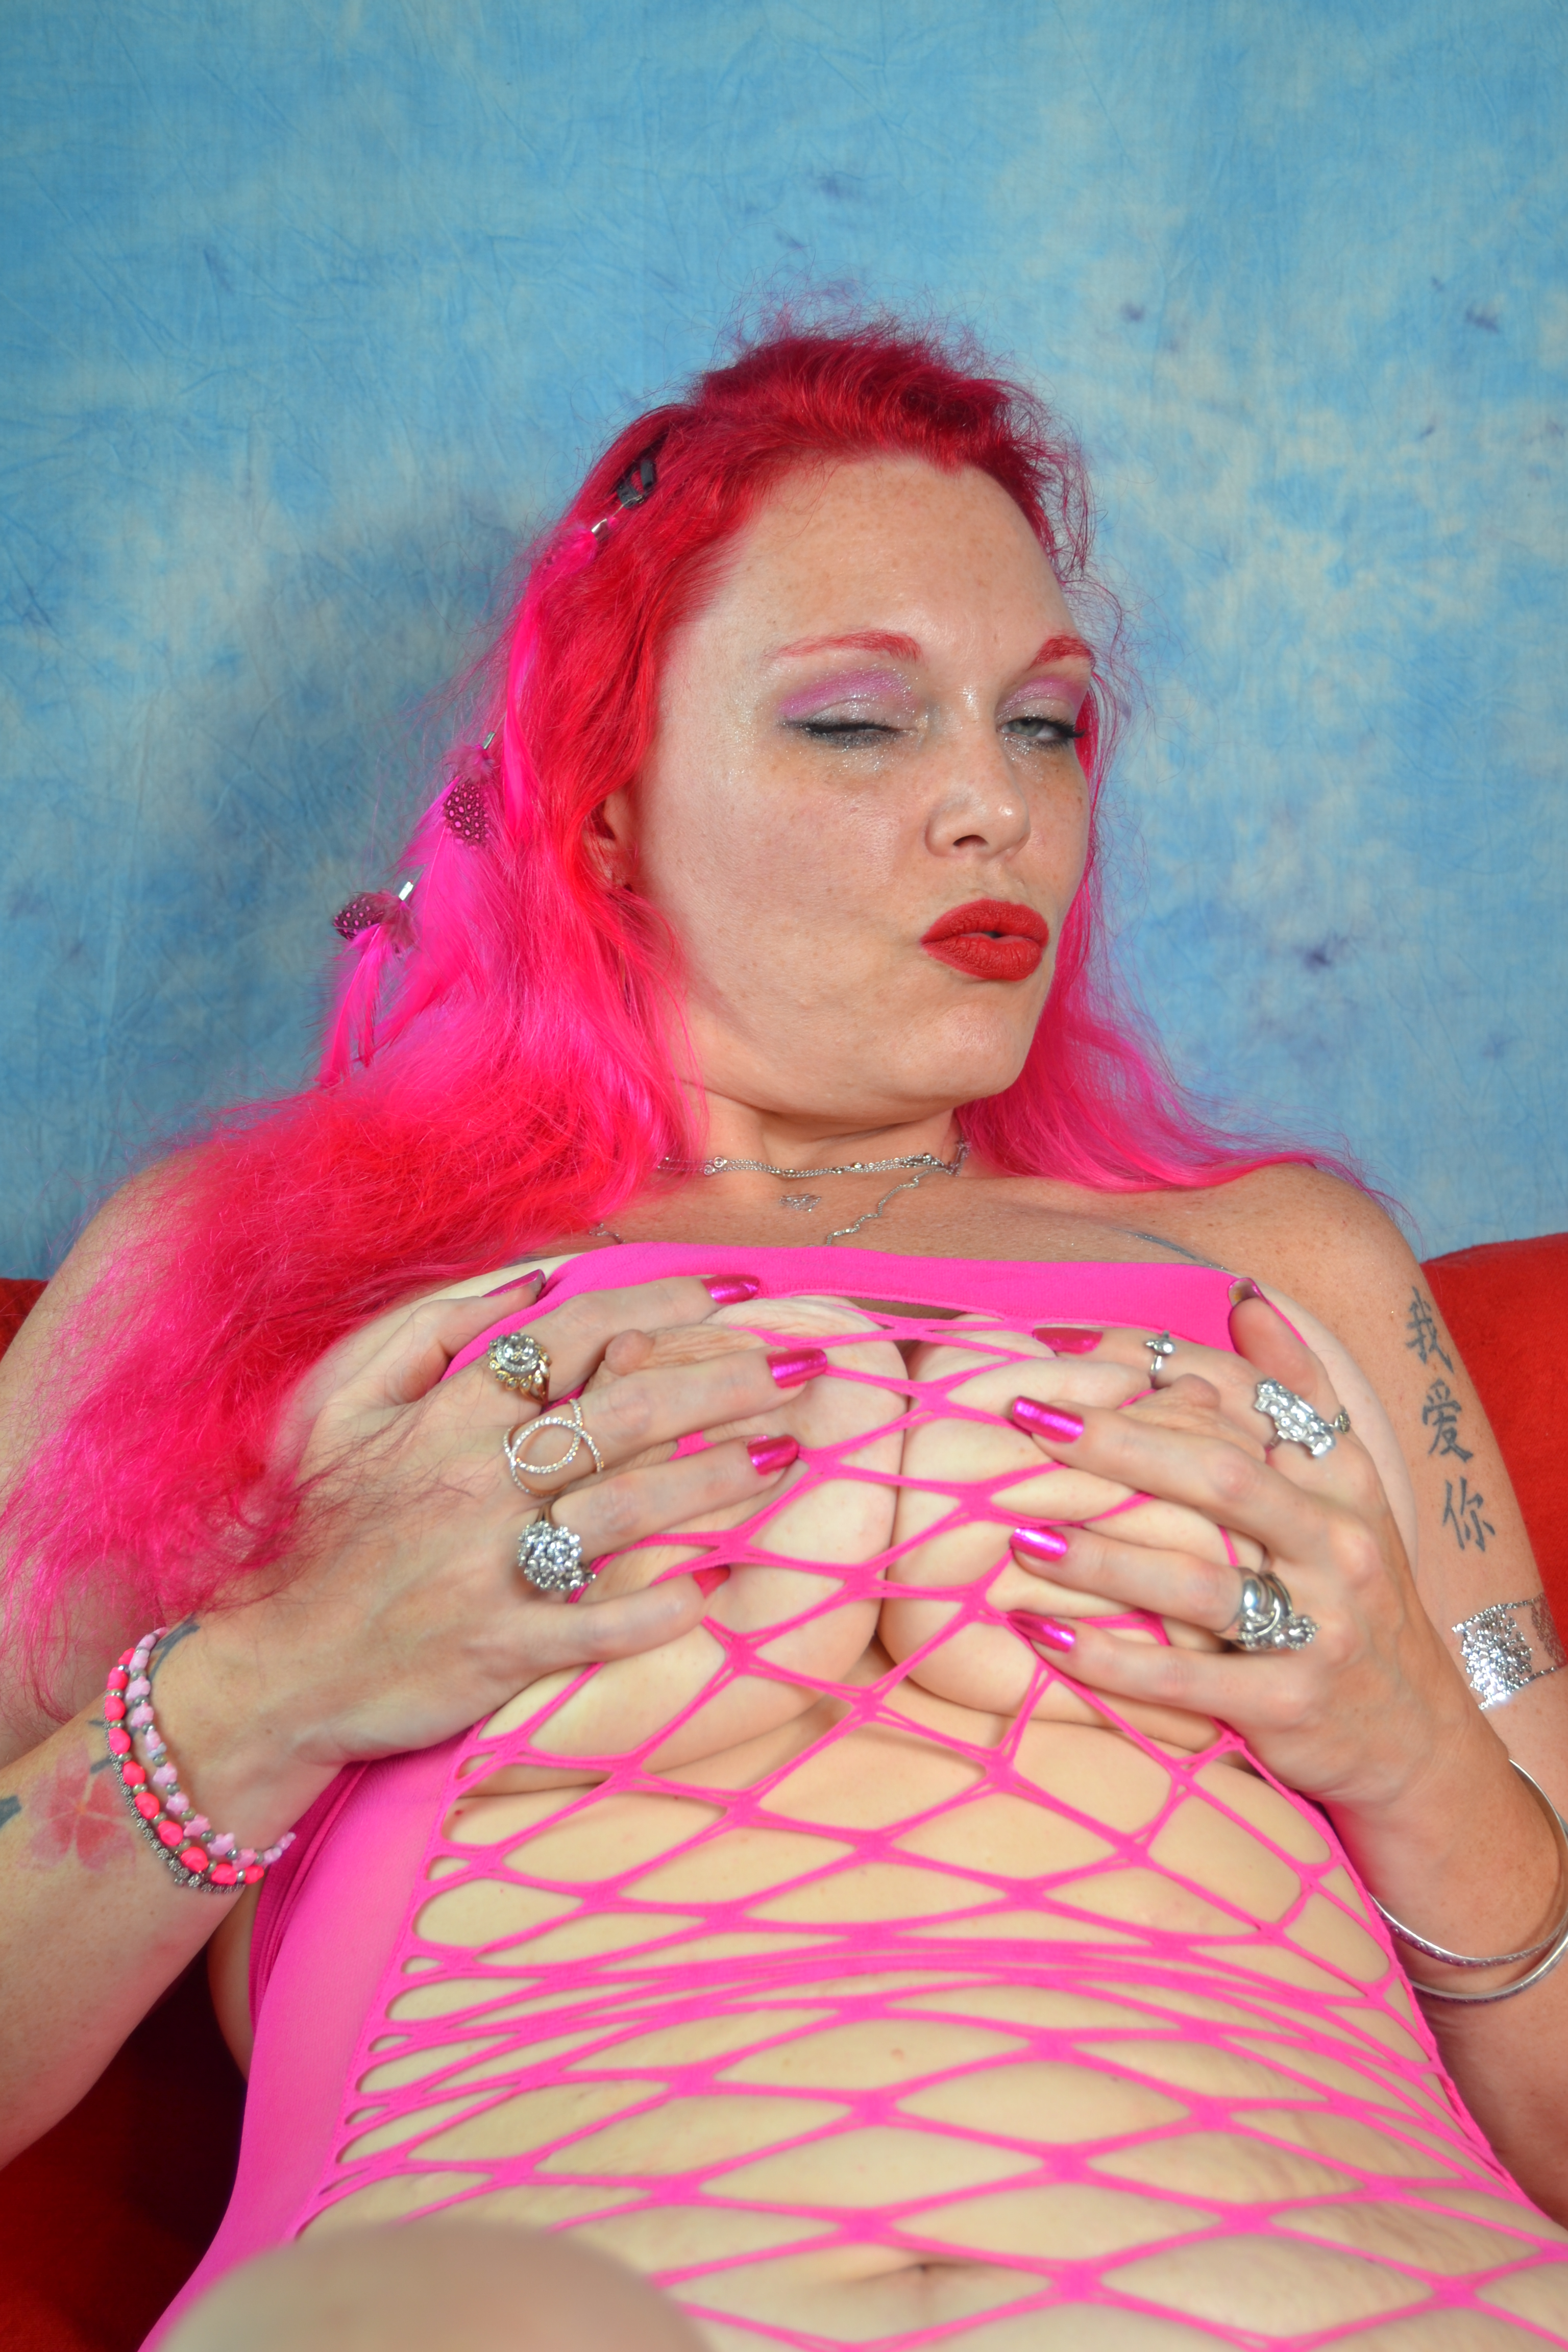 Naked jiggling breasts video